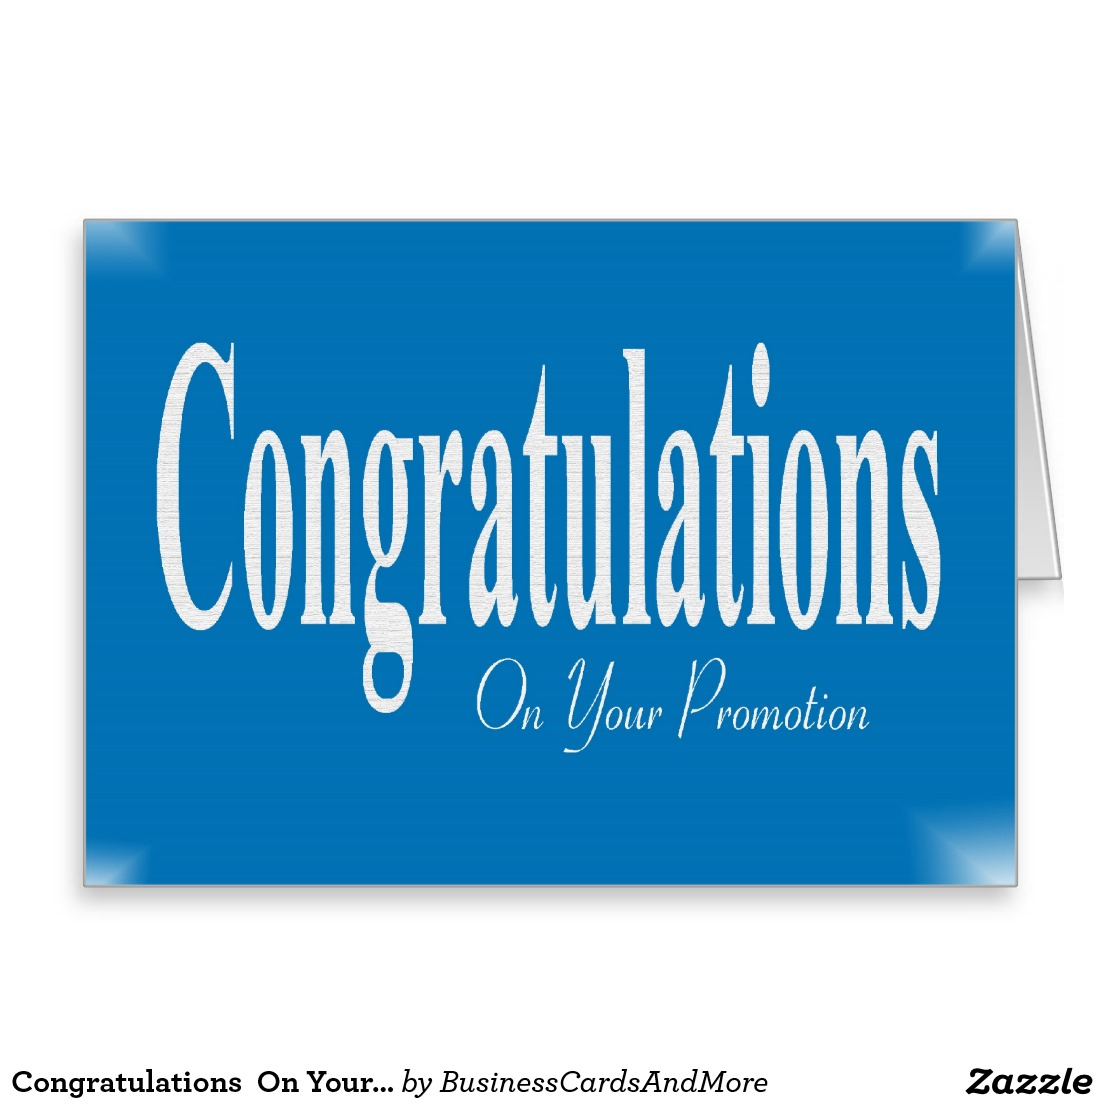 Congratulations Quotes New Job Position: 32 Delightful Congratulations On Promotion Pictures